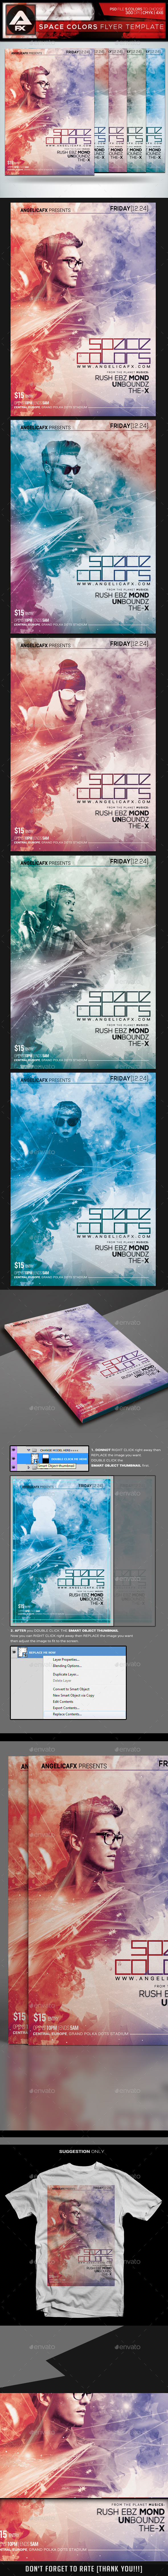 Space Colors Flyer Template - Flyers Print Templates